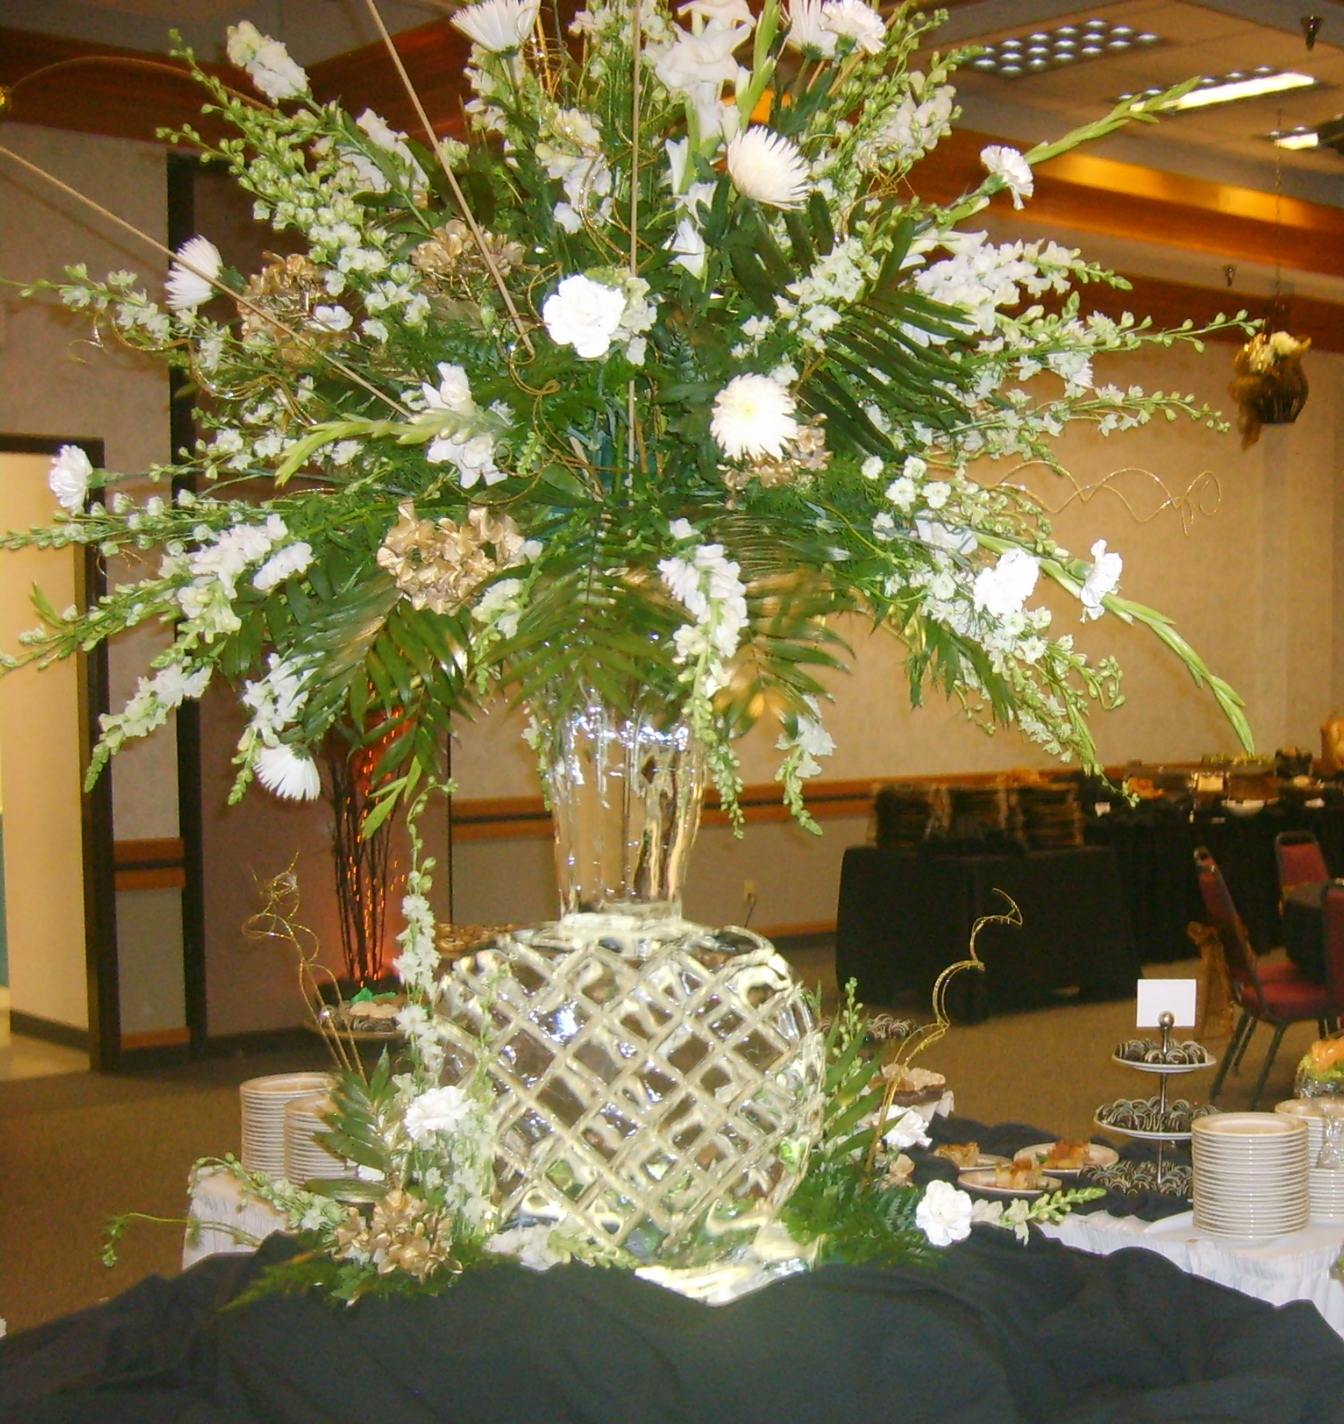 Rotary gold 2012 ice vase with white flowers